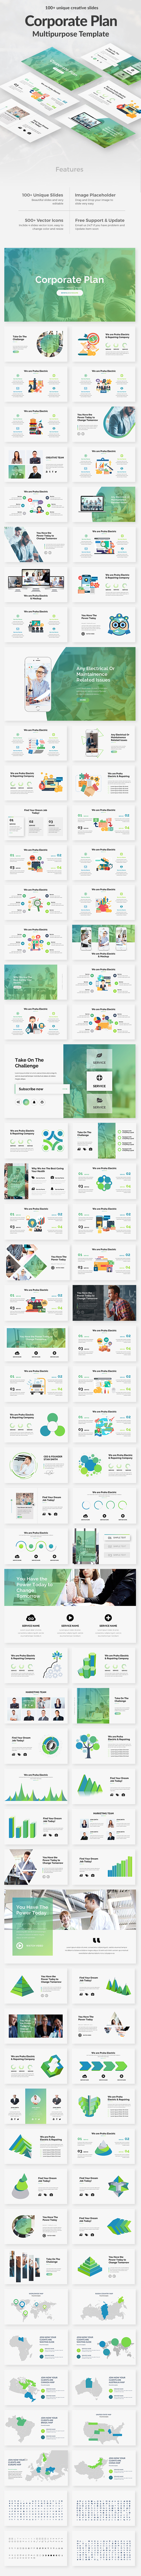 GraphicRiver Corporate Plan Multipurpose Powerpoint Template 21144093